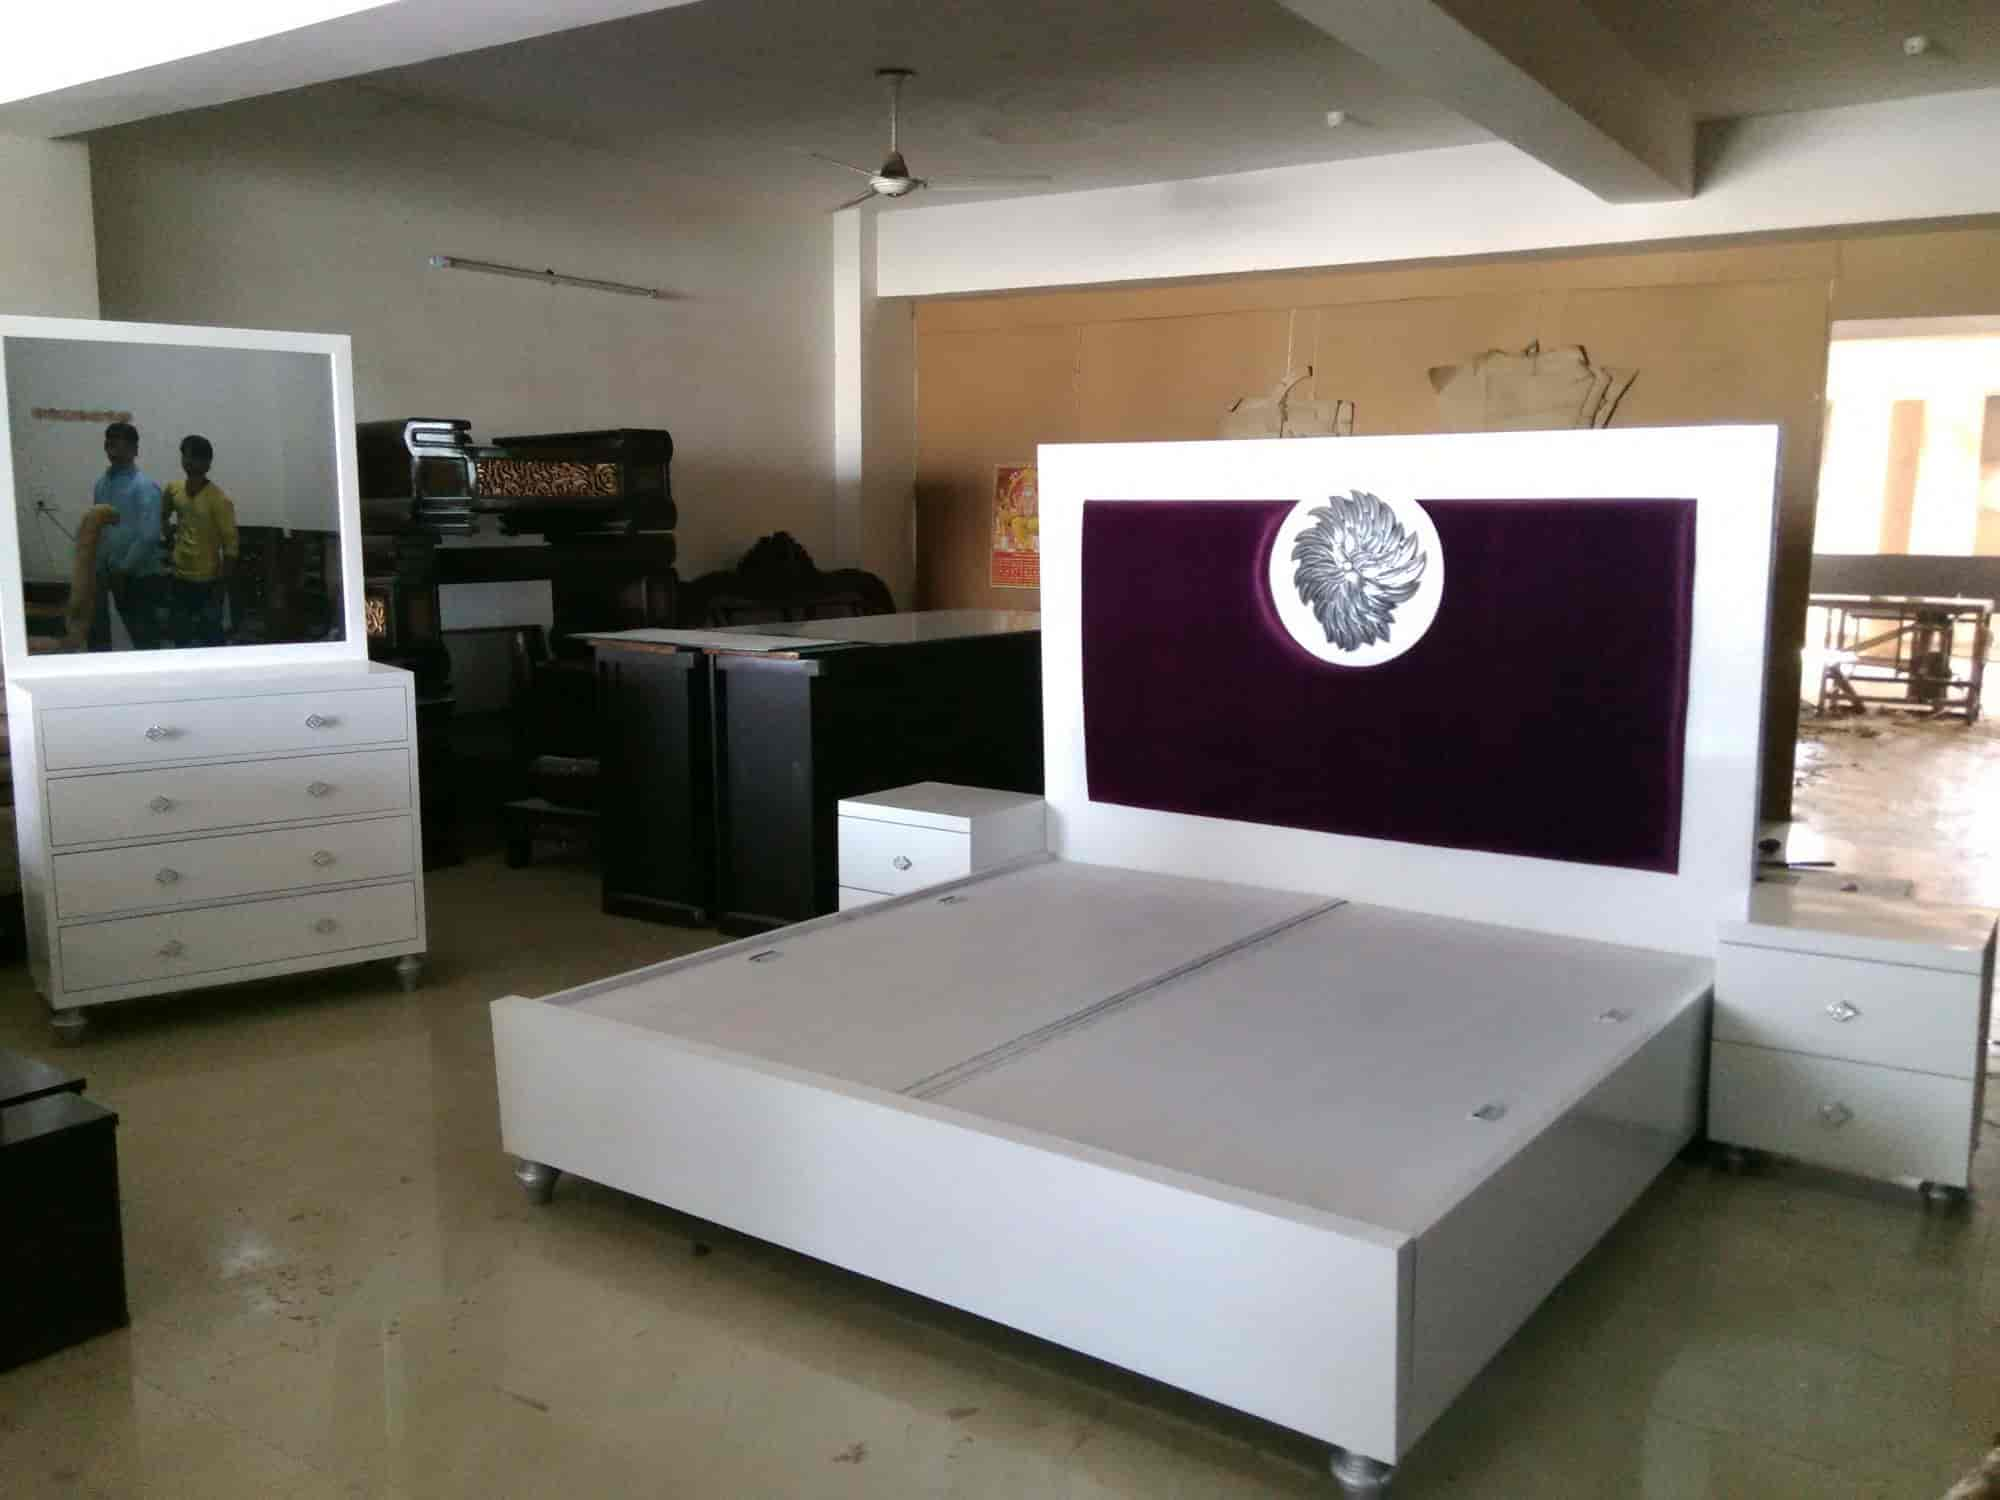 Pleasant H K Furniture Kirti Nagar Home Furniture Manufacturers In Home Interior And Landscaping Oversignezvosmurscom